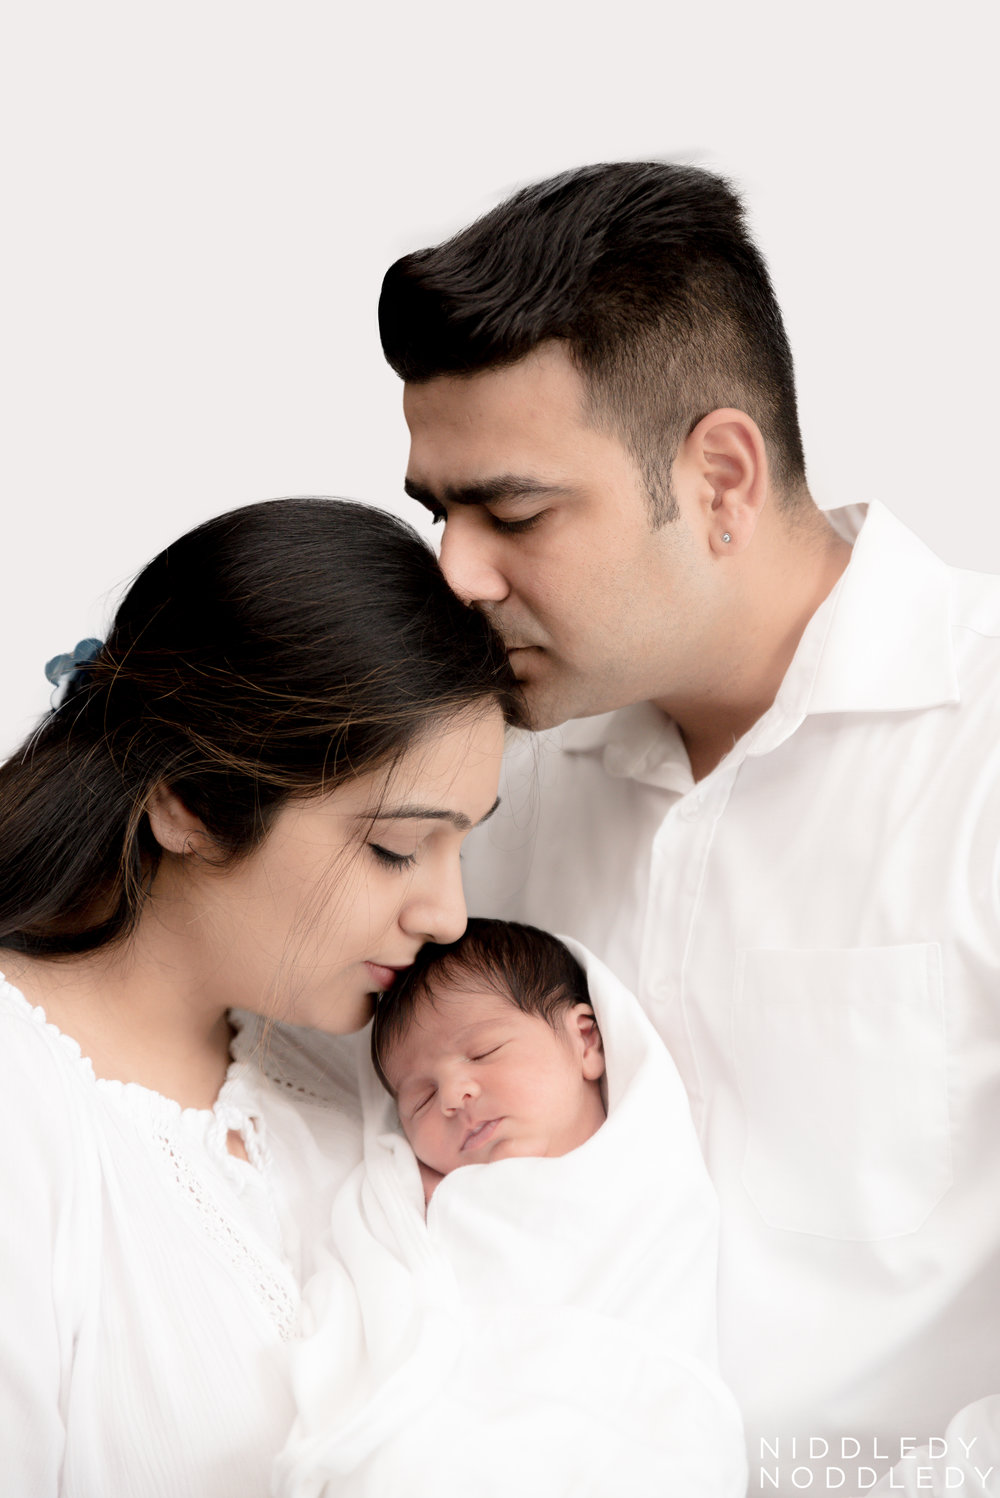 Viraj Newborn Photoshoot ❤ NiddledyNoddledy.com ~ Bumps to Babies Photography, Kolkata - 07.jpg